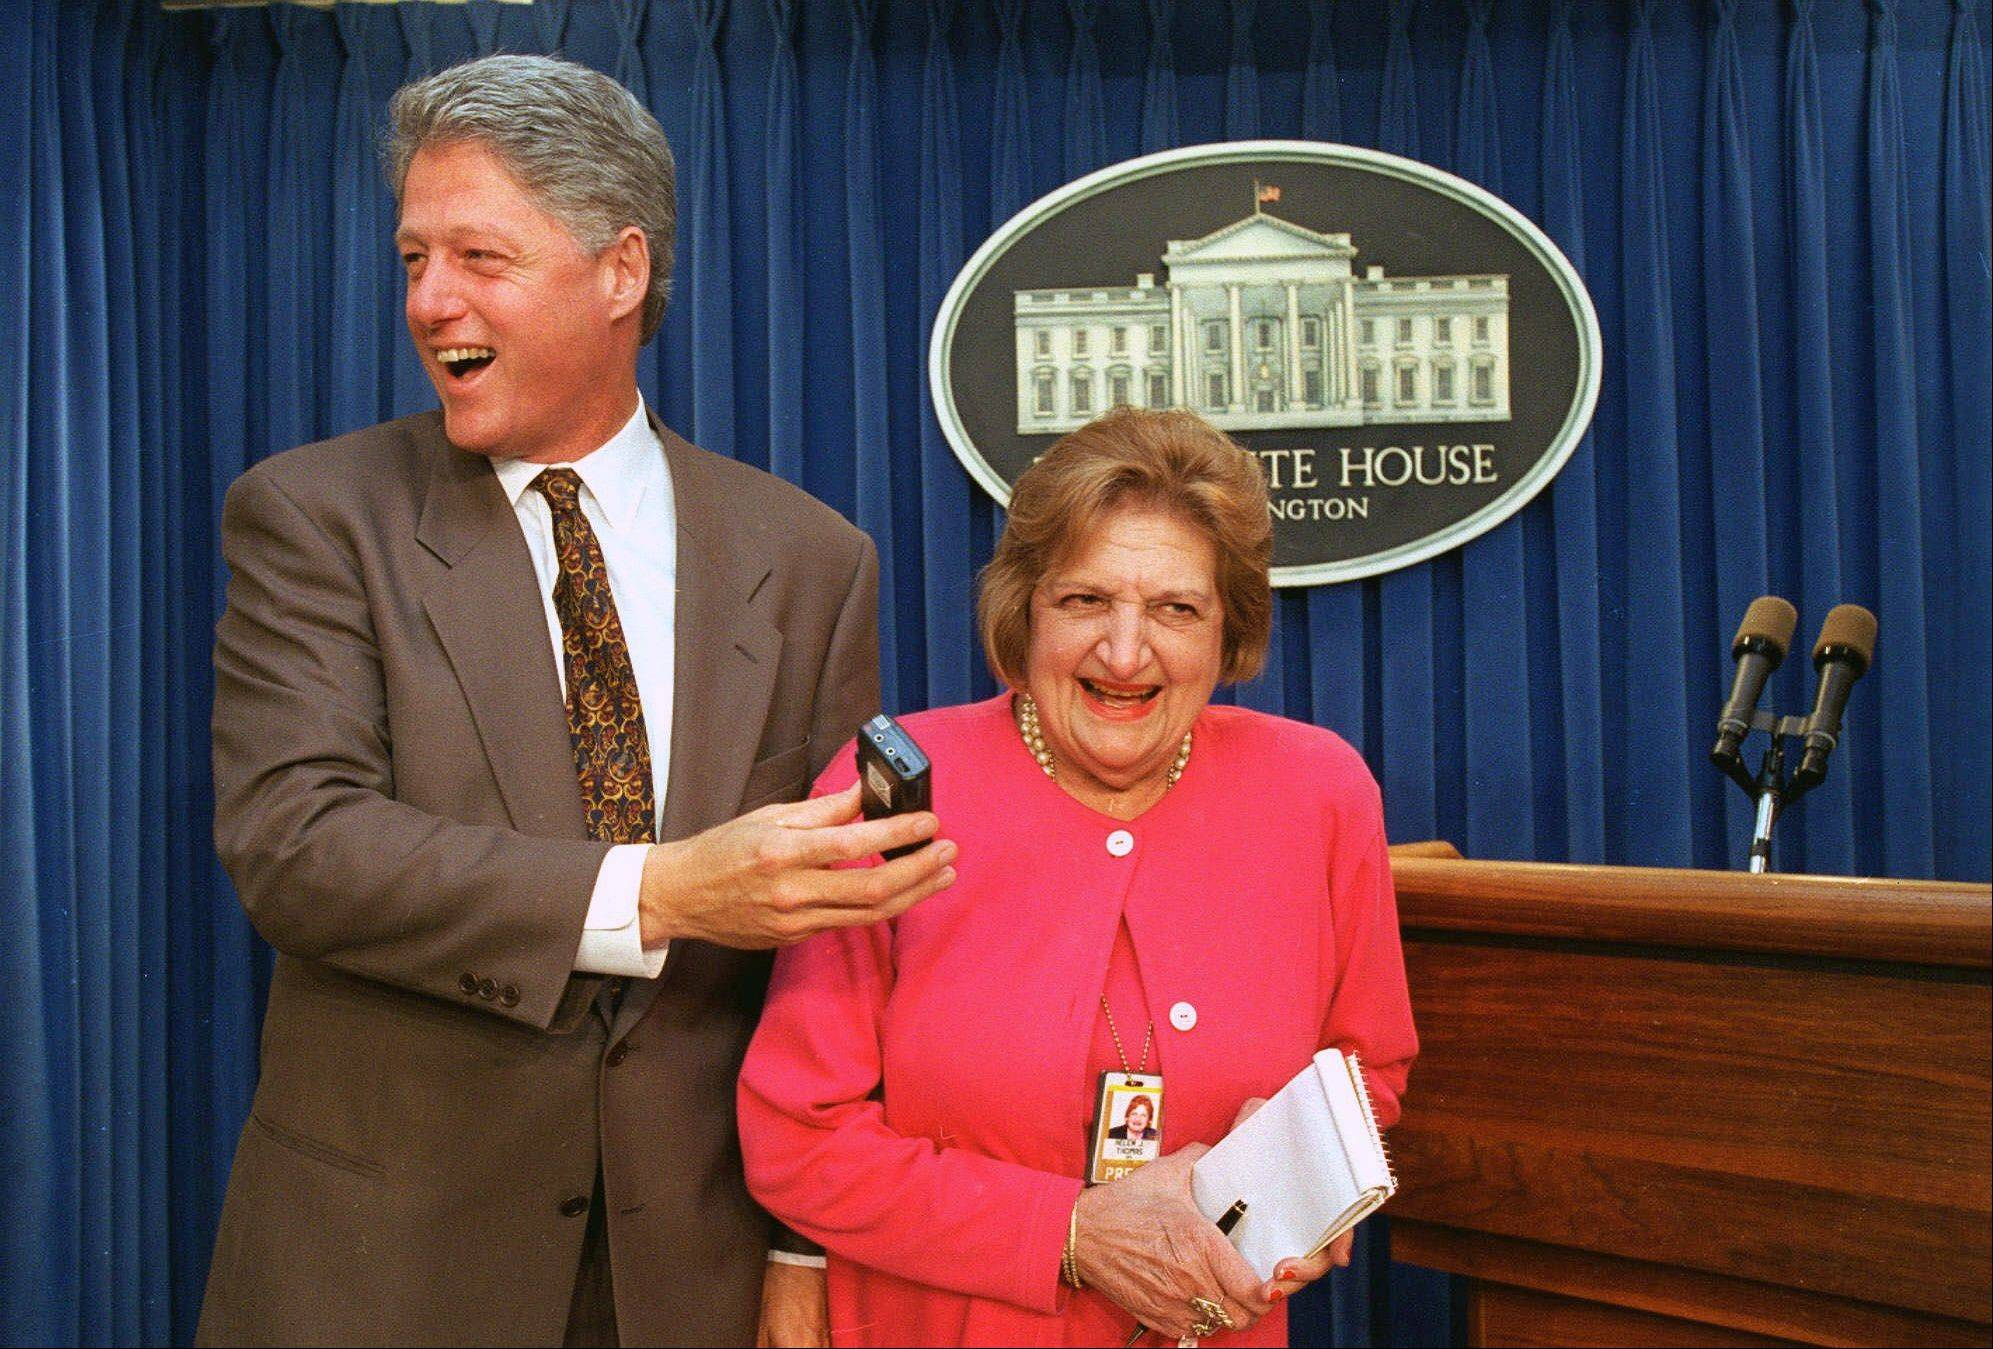 "Associated PressIn this Aug. 4, 1995, file photo, President Clinton ""interviews"" UPI White House correspondent Helen Thomas in the White House briefing room in Washington. Thomas, a pioneer for women in journalism and an irrepressible White House correspondent, has died Saturday, July 20, 2013. She was 92."